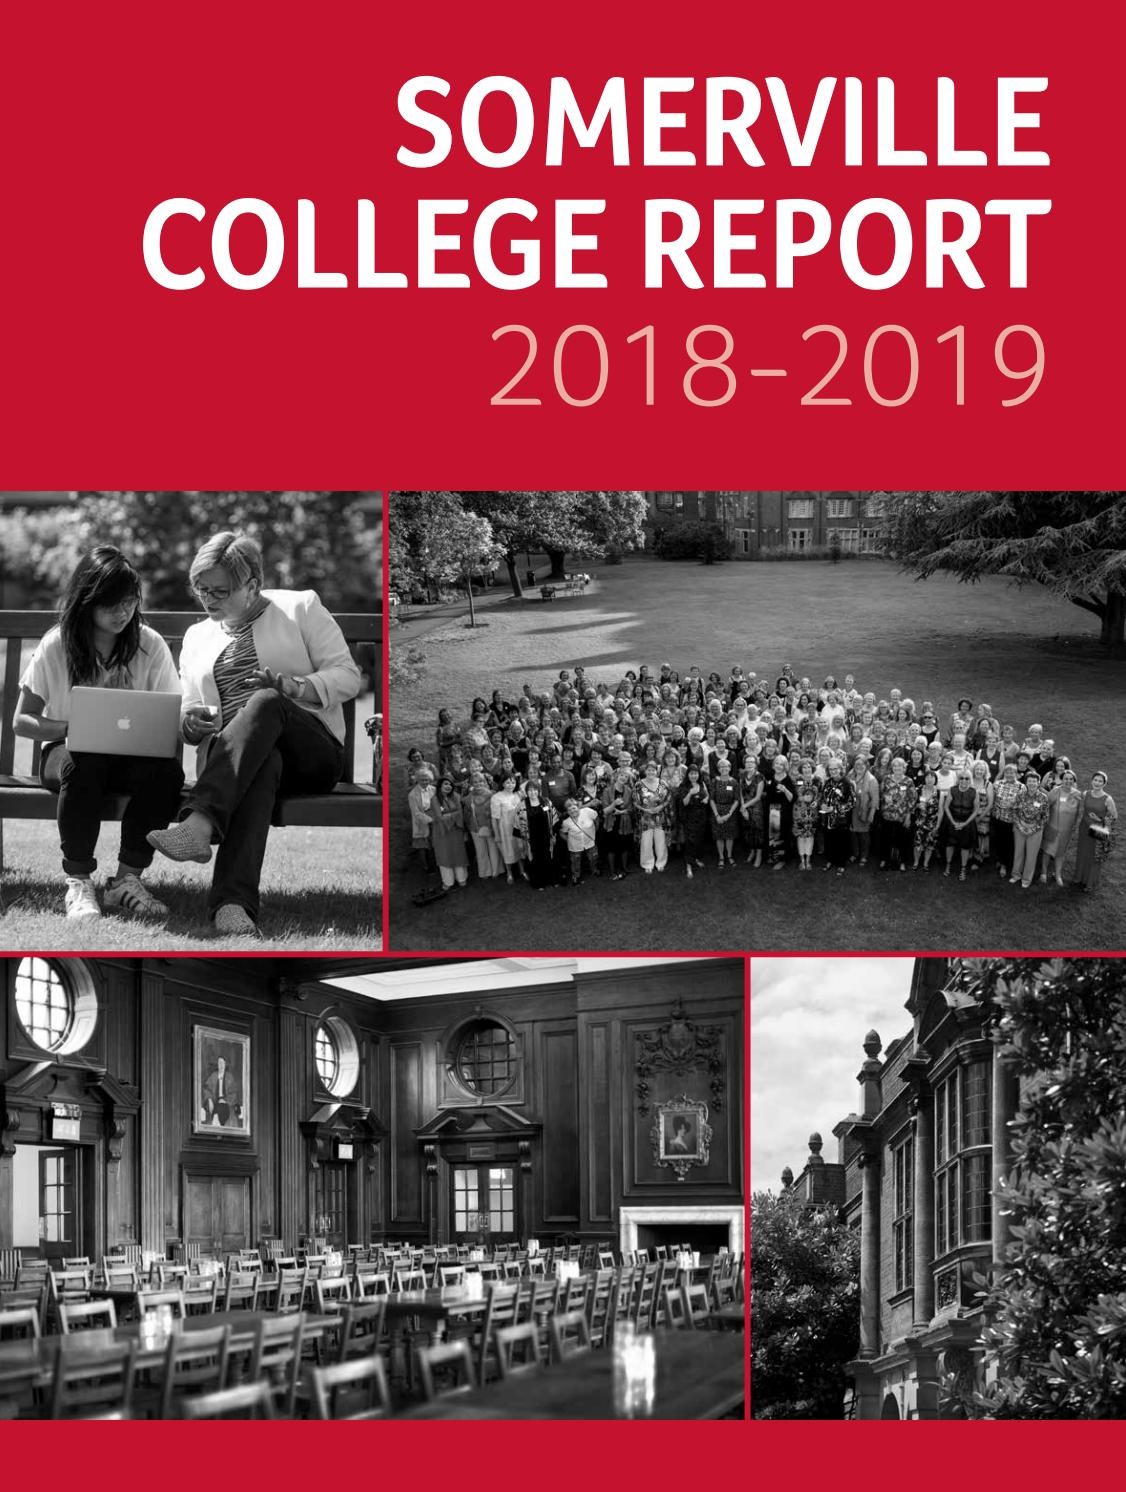 Animal Crossing Isabelle X Digby Porn college report 2018-9somerville college - issuu